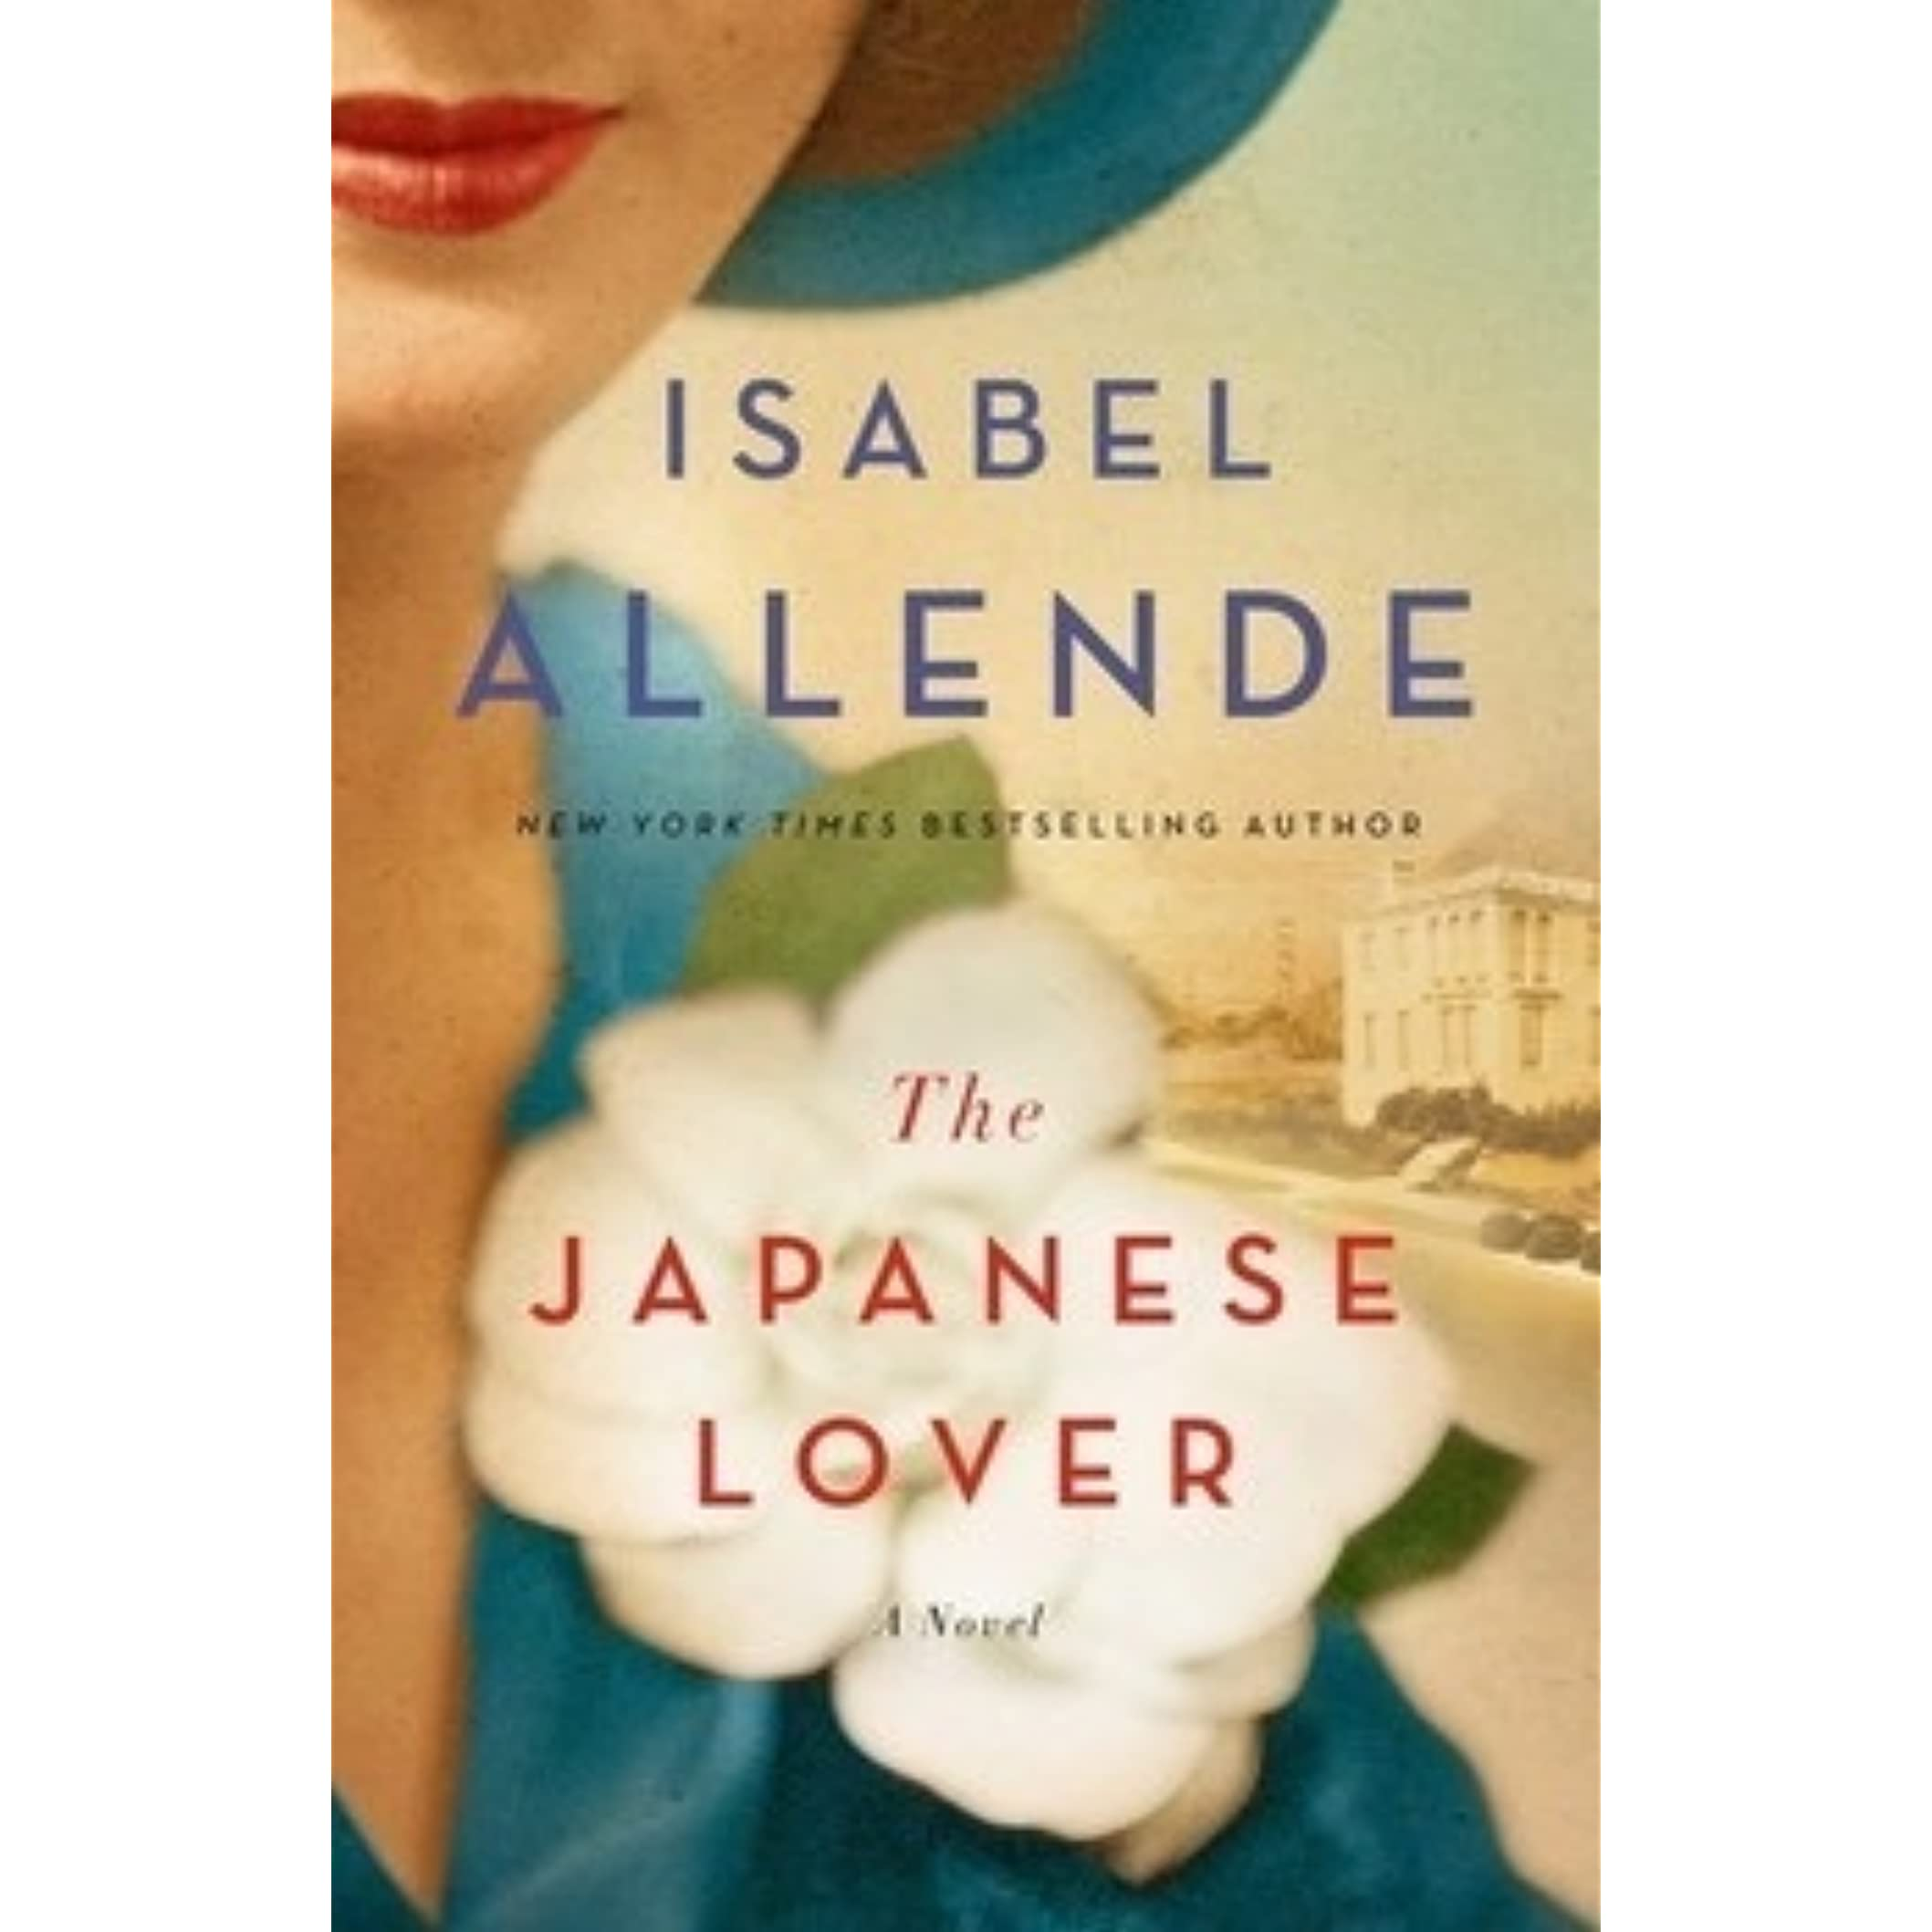 The Japanese Lover By Isabel Allende €� Reviews, Discussion, Bookclubs, Lists